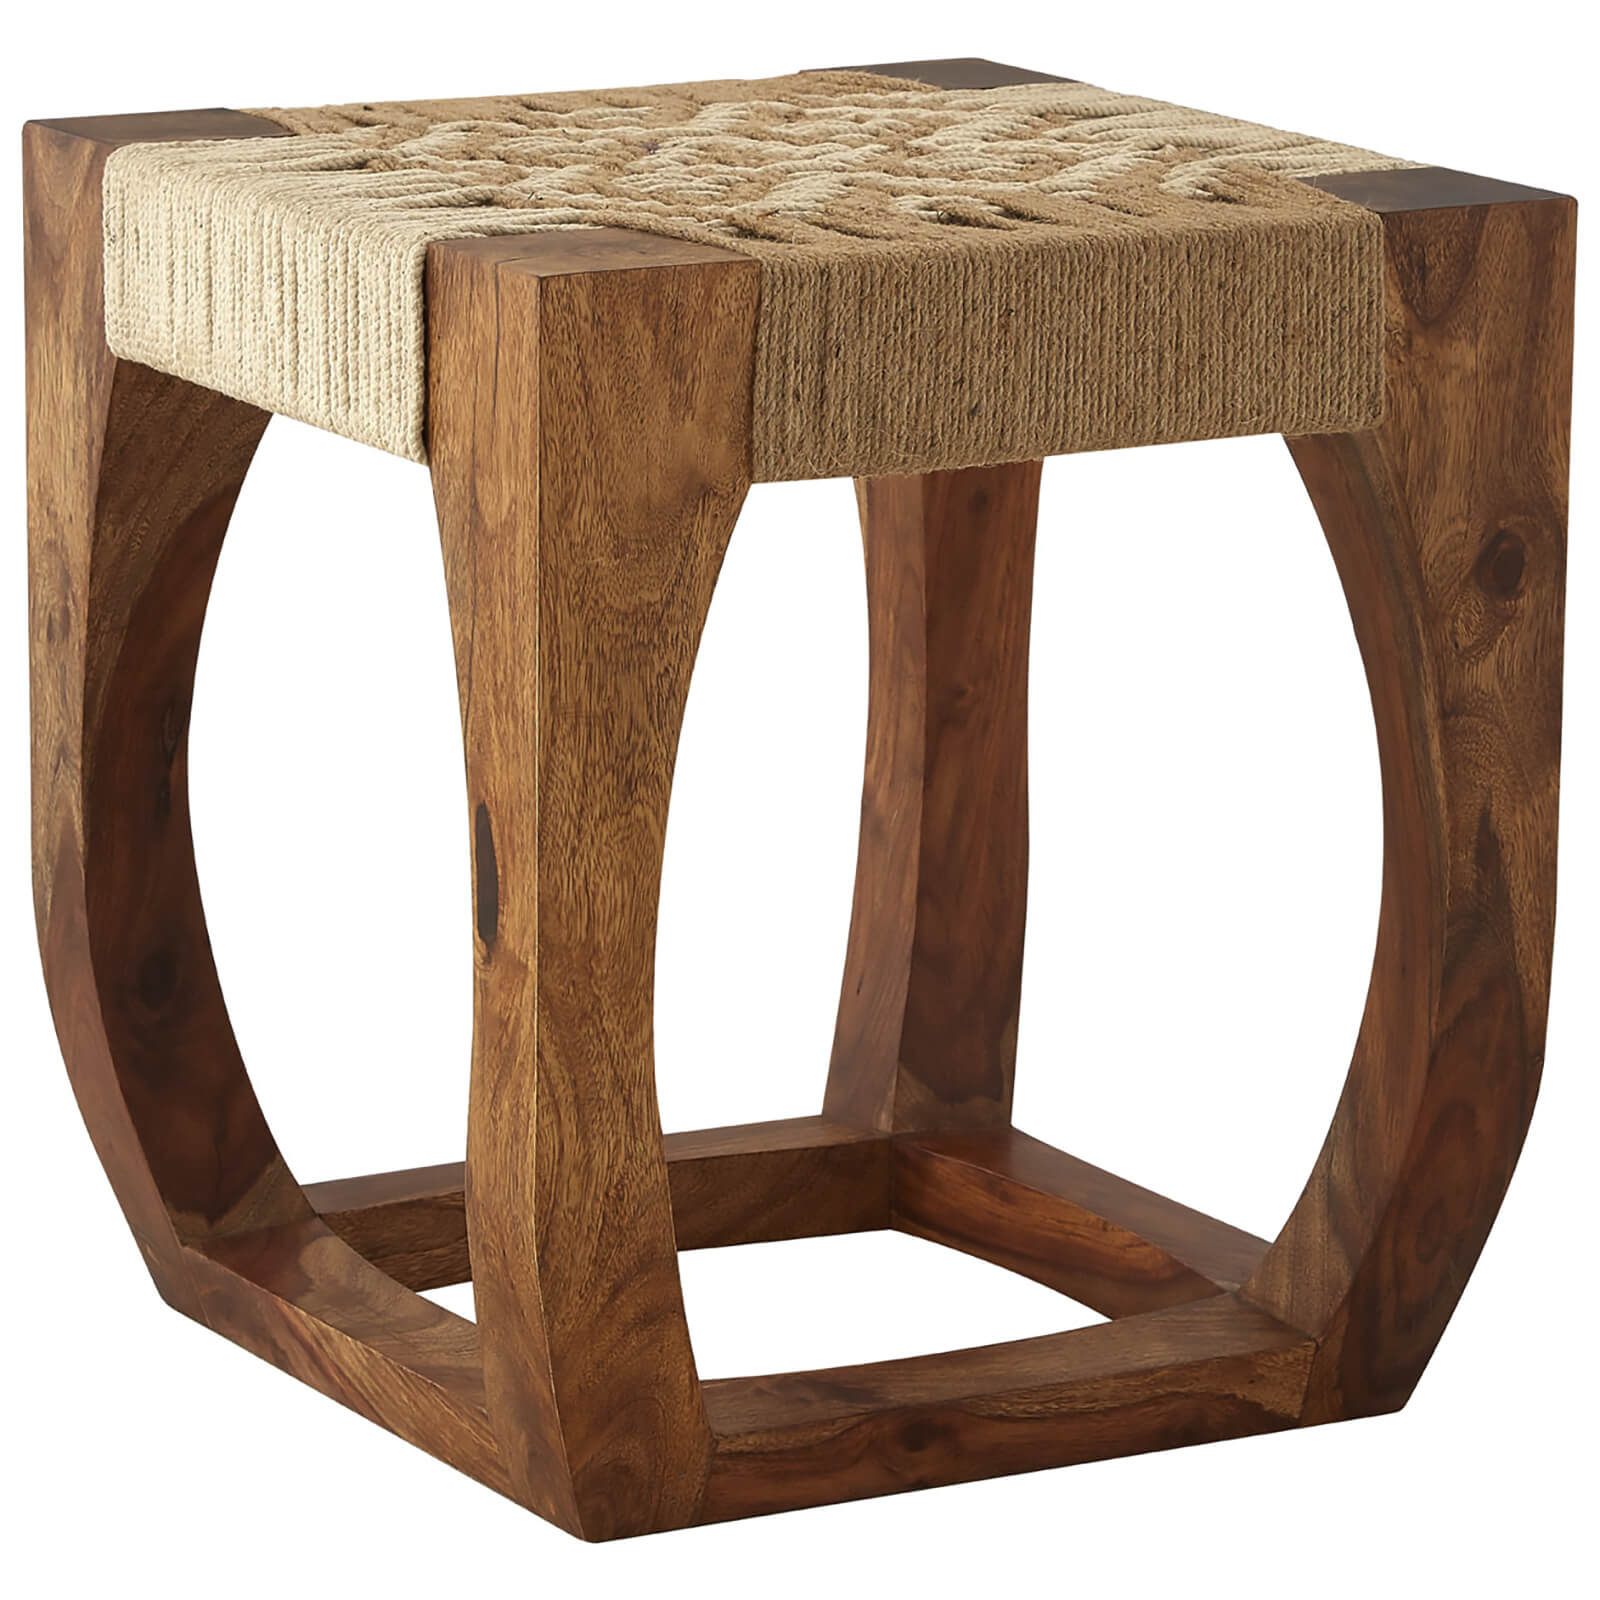 Fifty Five South Boho Stool - Sheesham Wood/Jute